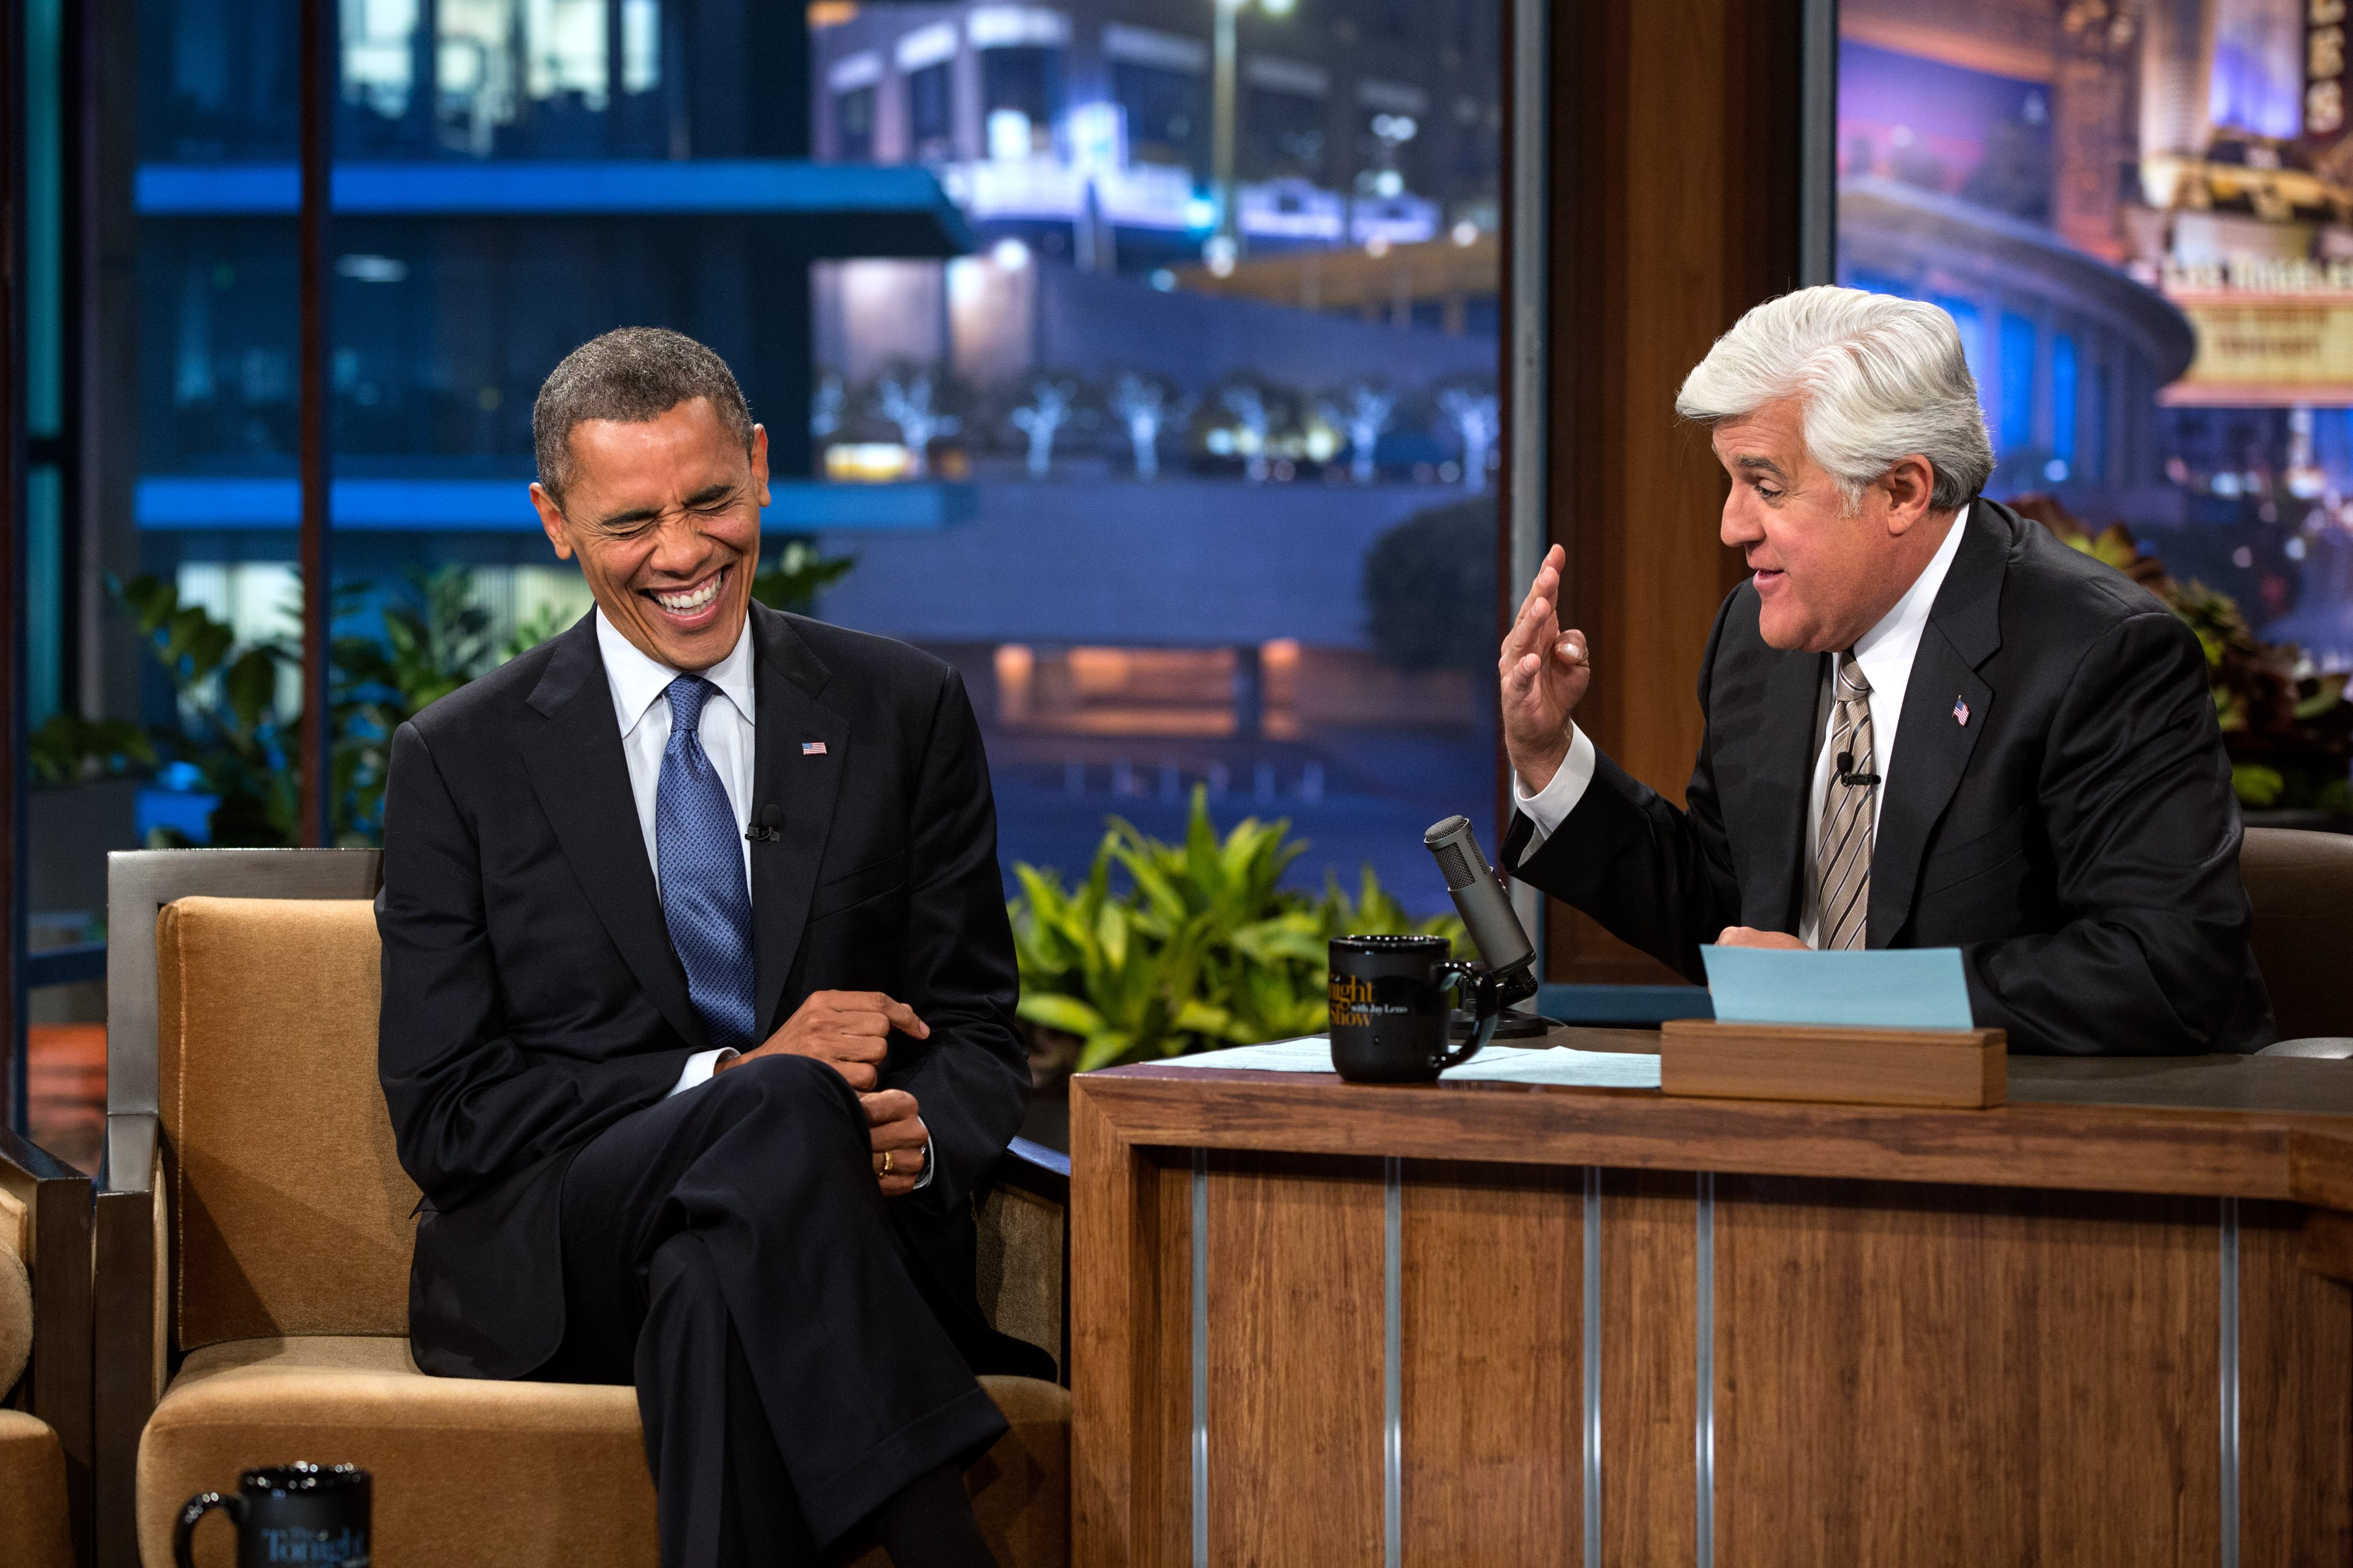 Barack Obama and Jay Leno on the Tonight's Show Image Source: Wikimedia Commons